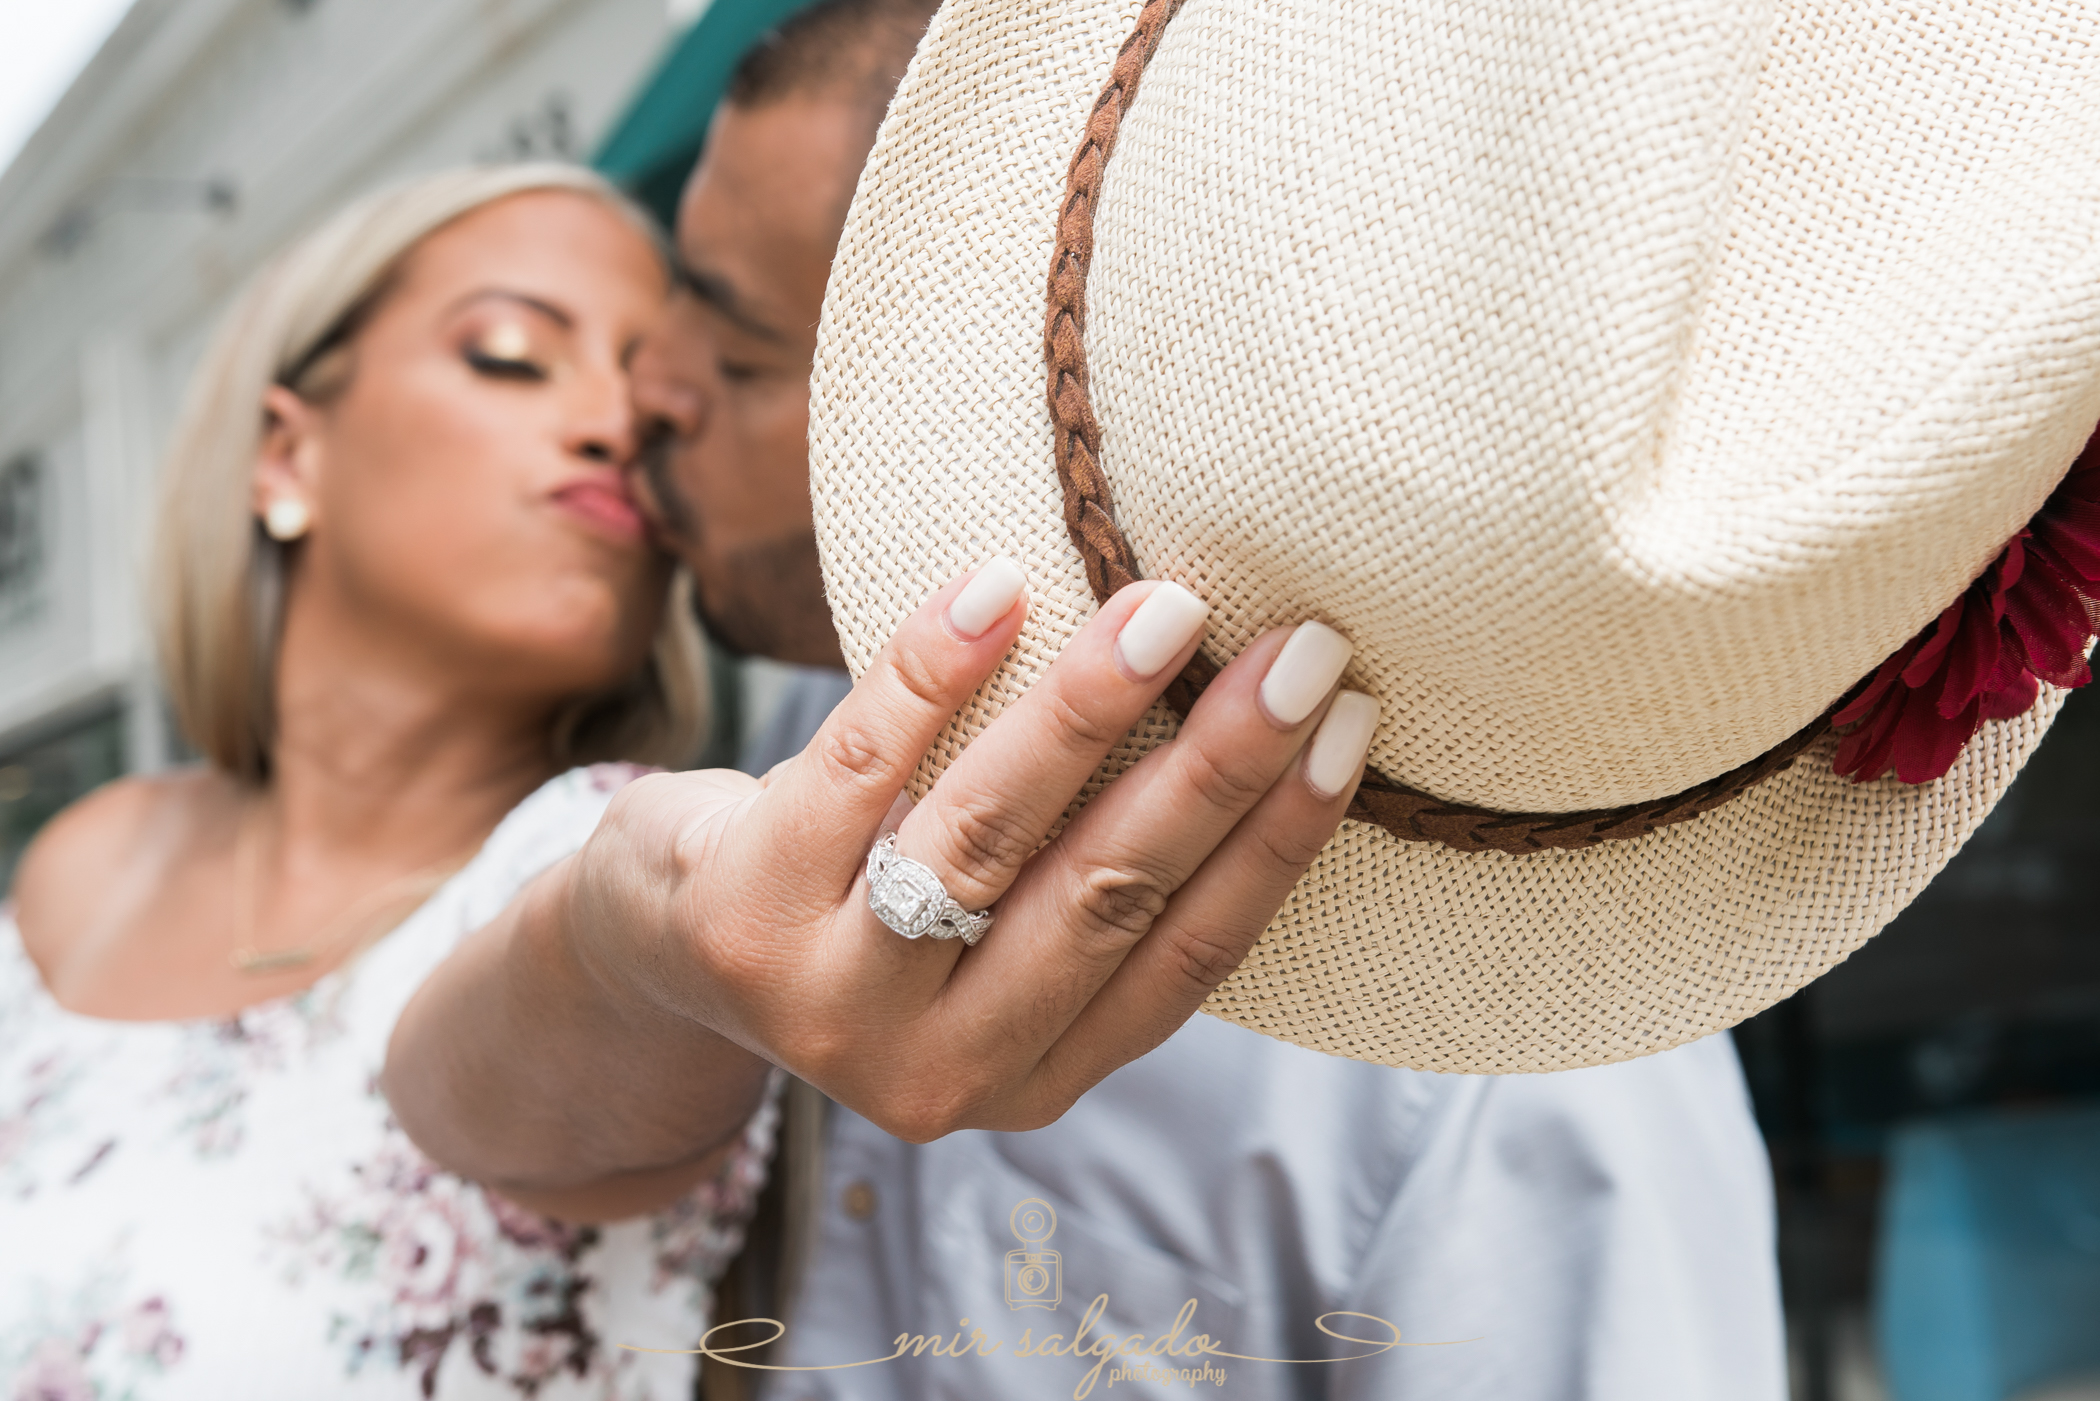 miriam-photography-tampa-st-pete-engagement-session-sunny-floral-dress-hat-diamond-ring-kisses